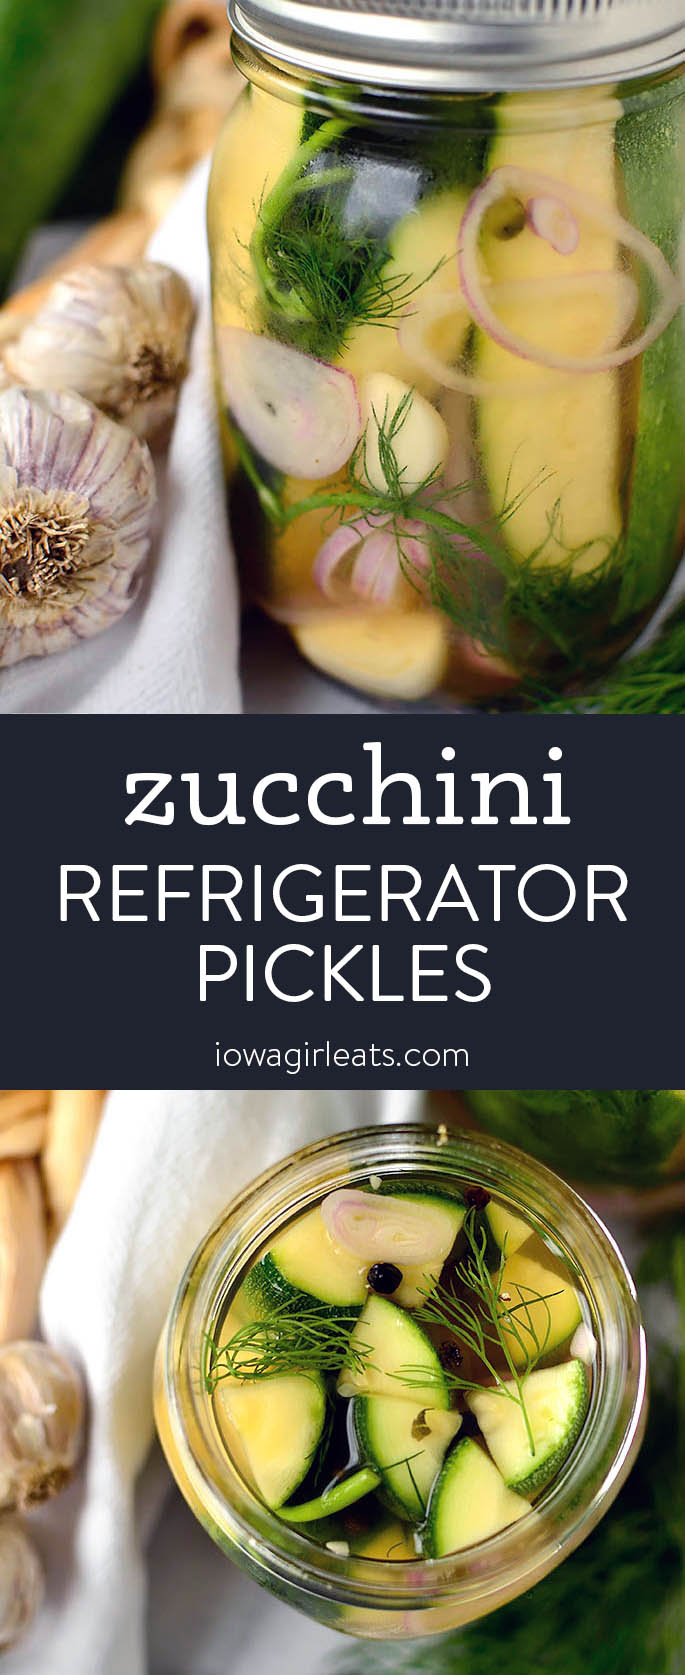 Photo collage of zucchini pickles